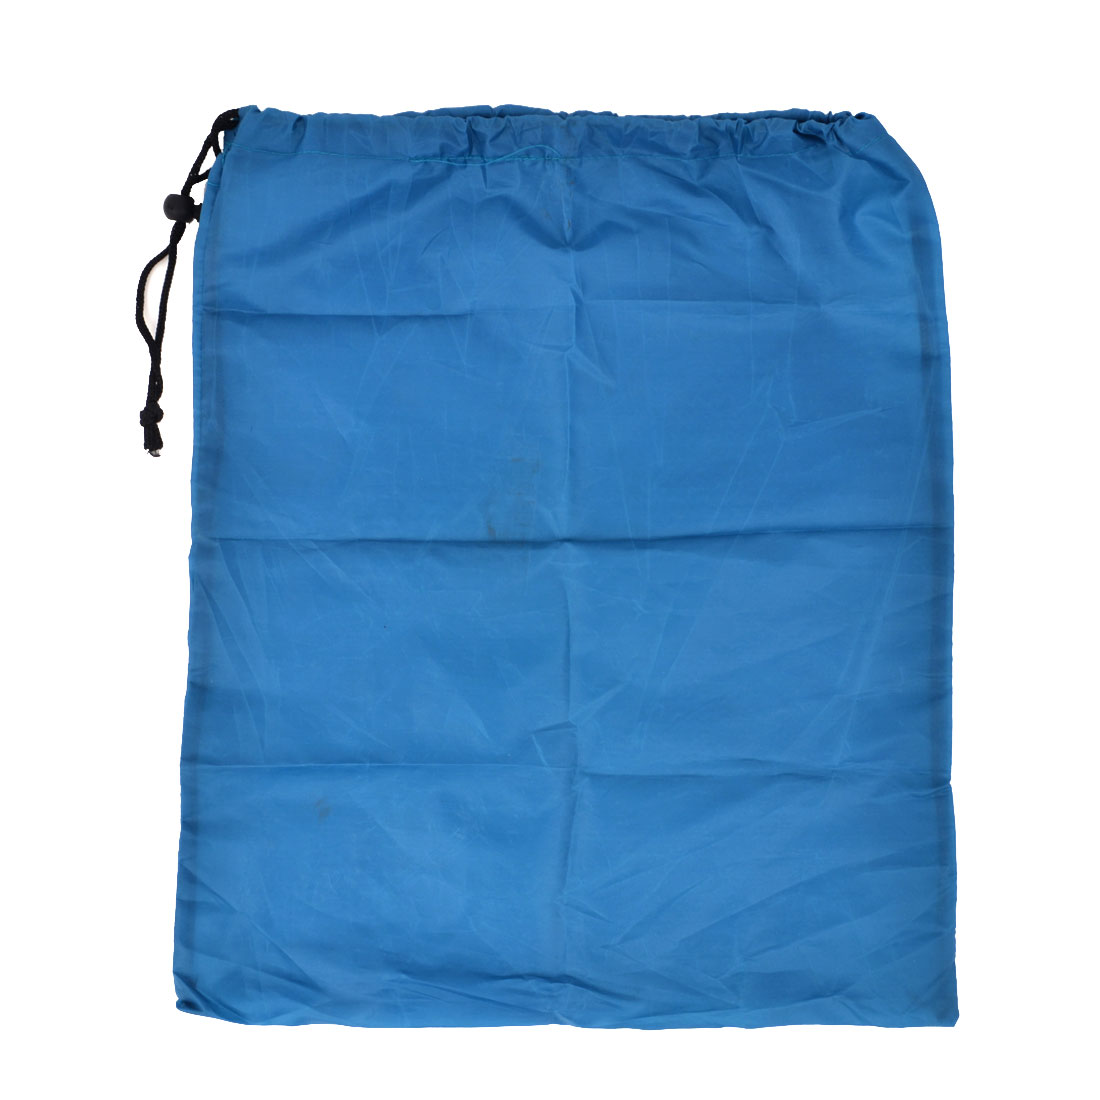 Drawstring Closure Teal Blue Nylon Moisture Proof Mat Holder Bag Pouch